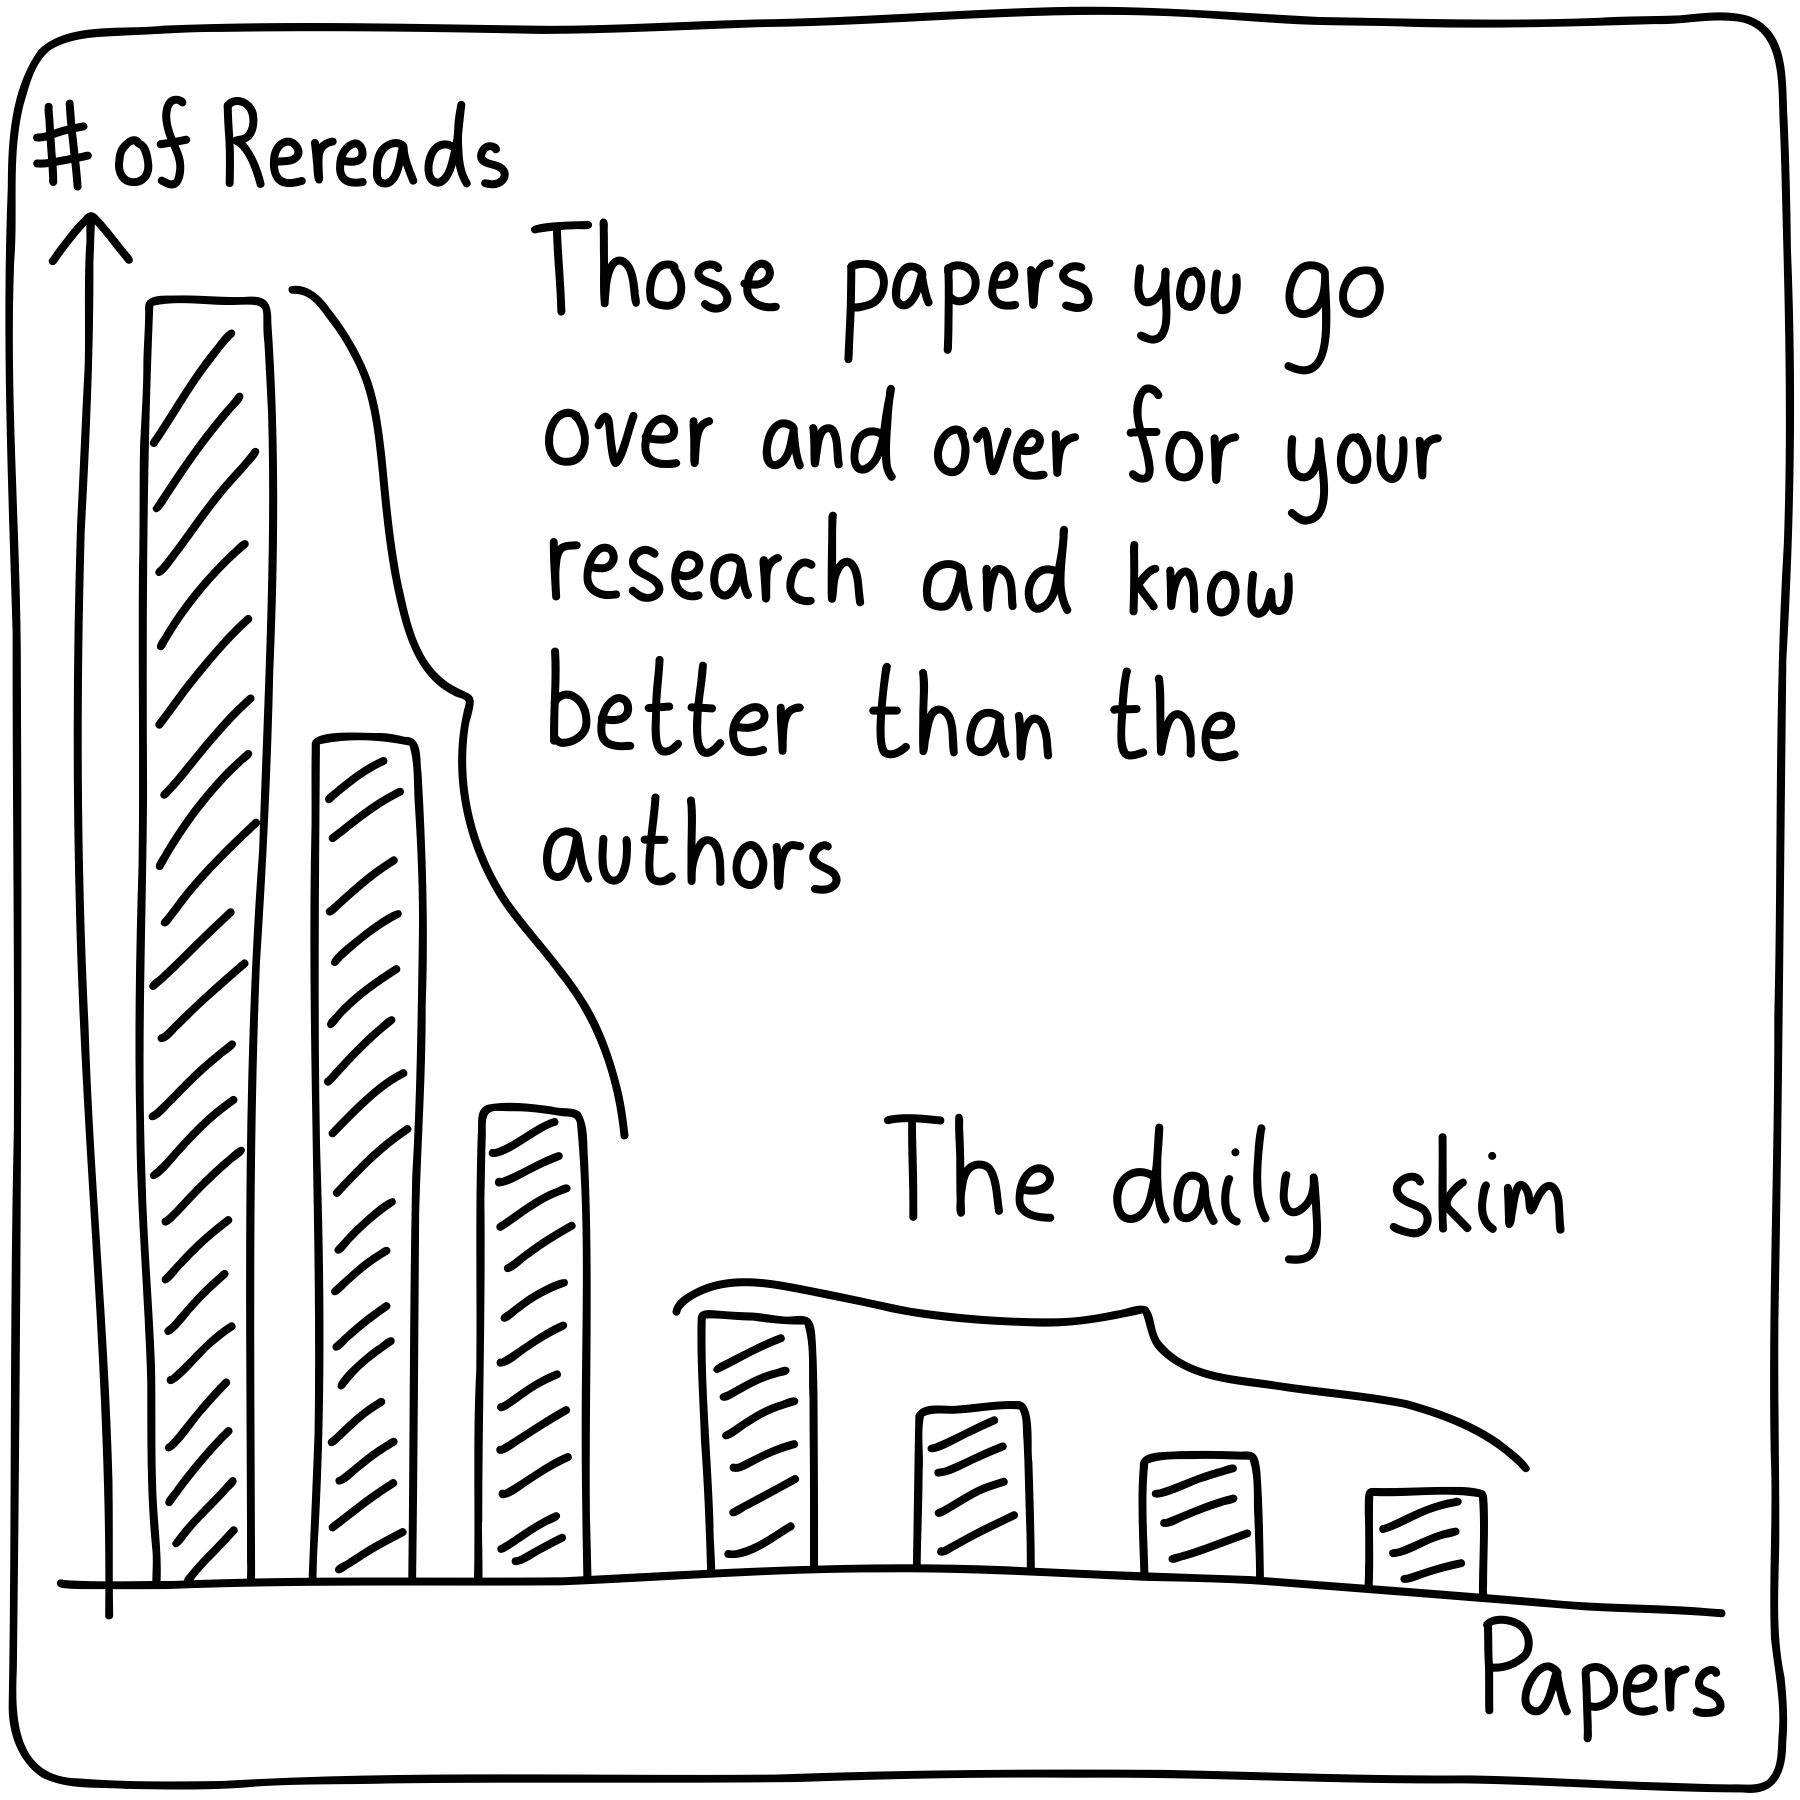 A plot of the number of rereads indexed by paper. A few gobble up most of the reread count.